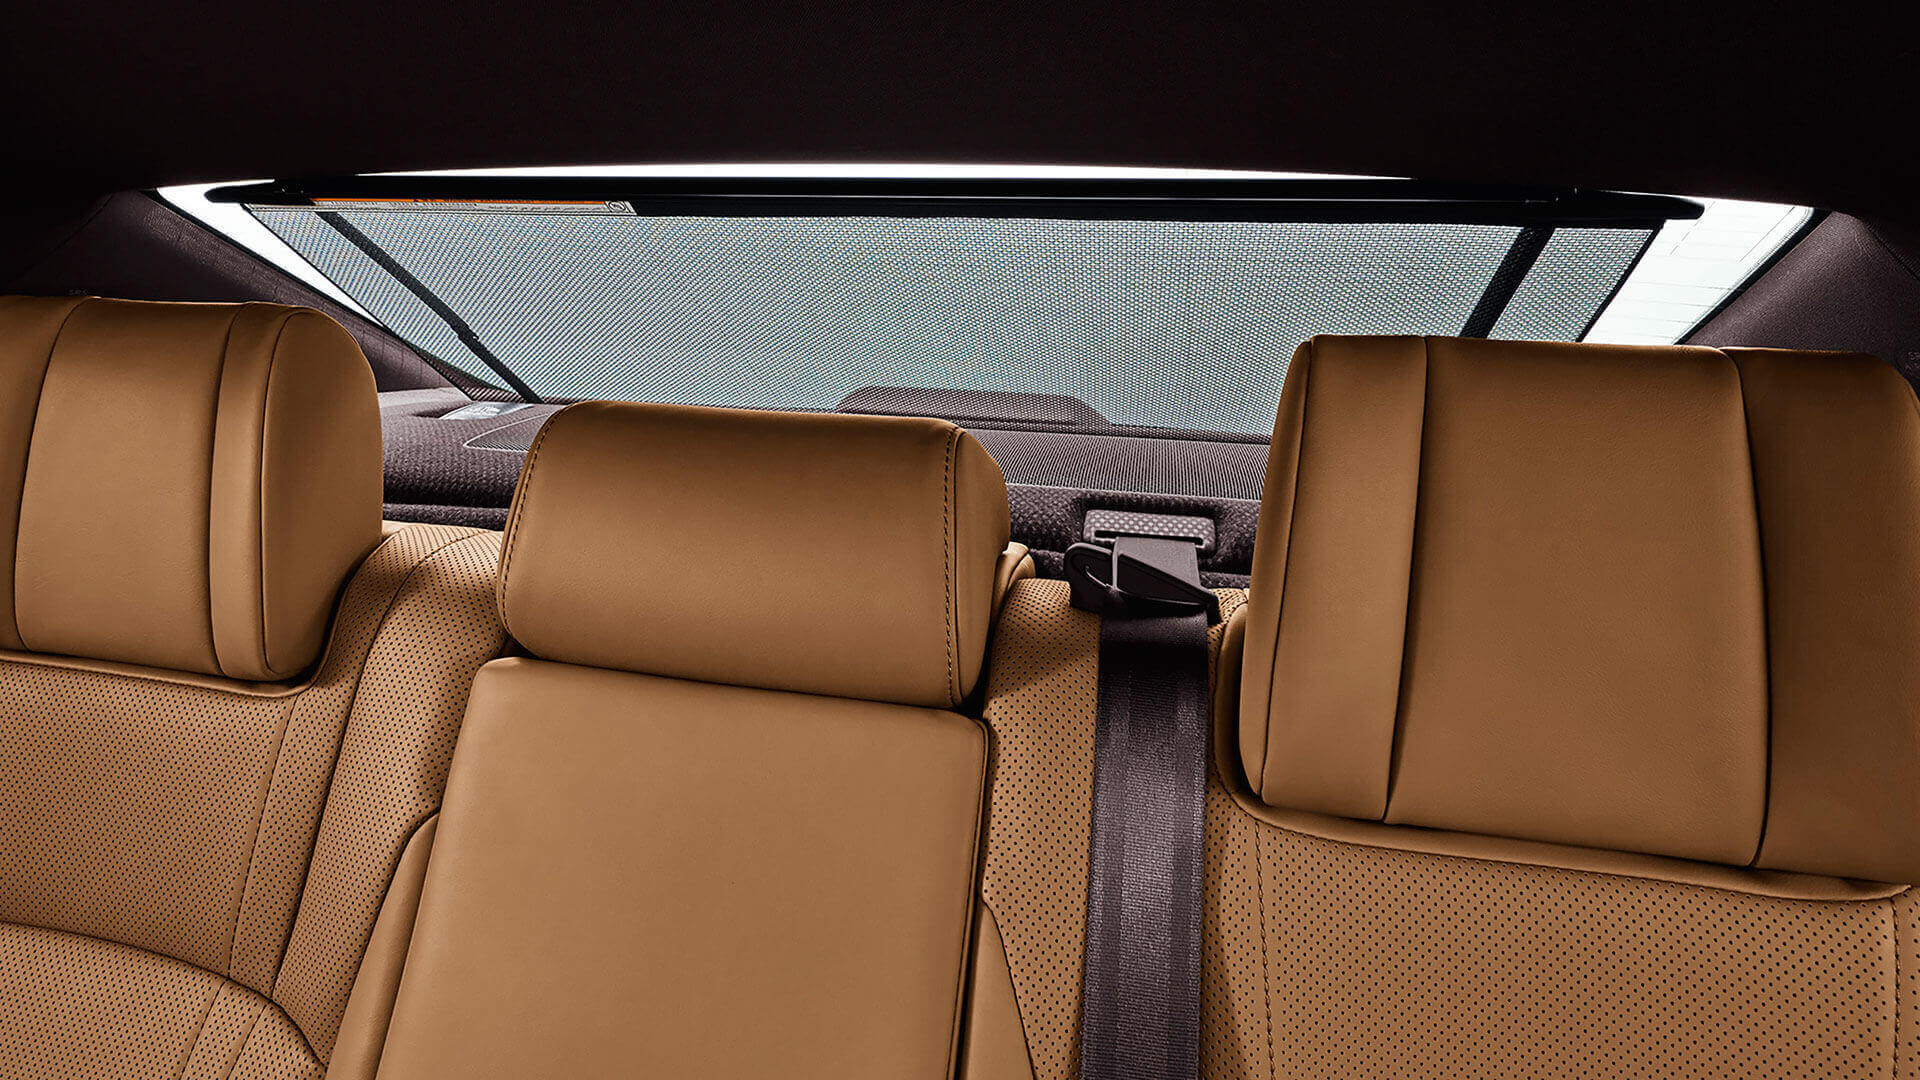 2019 lexus es hybrid experience feature rear sun shade